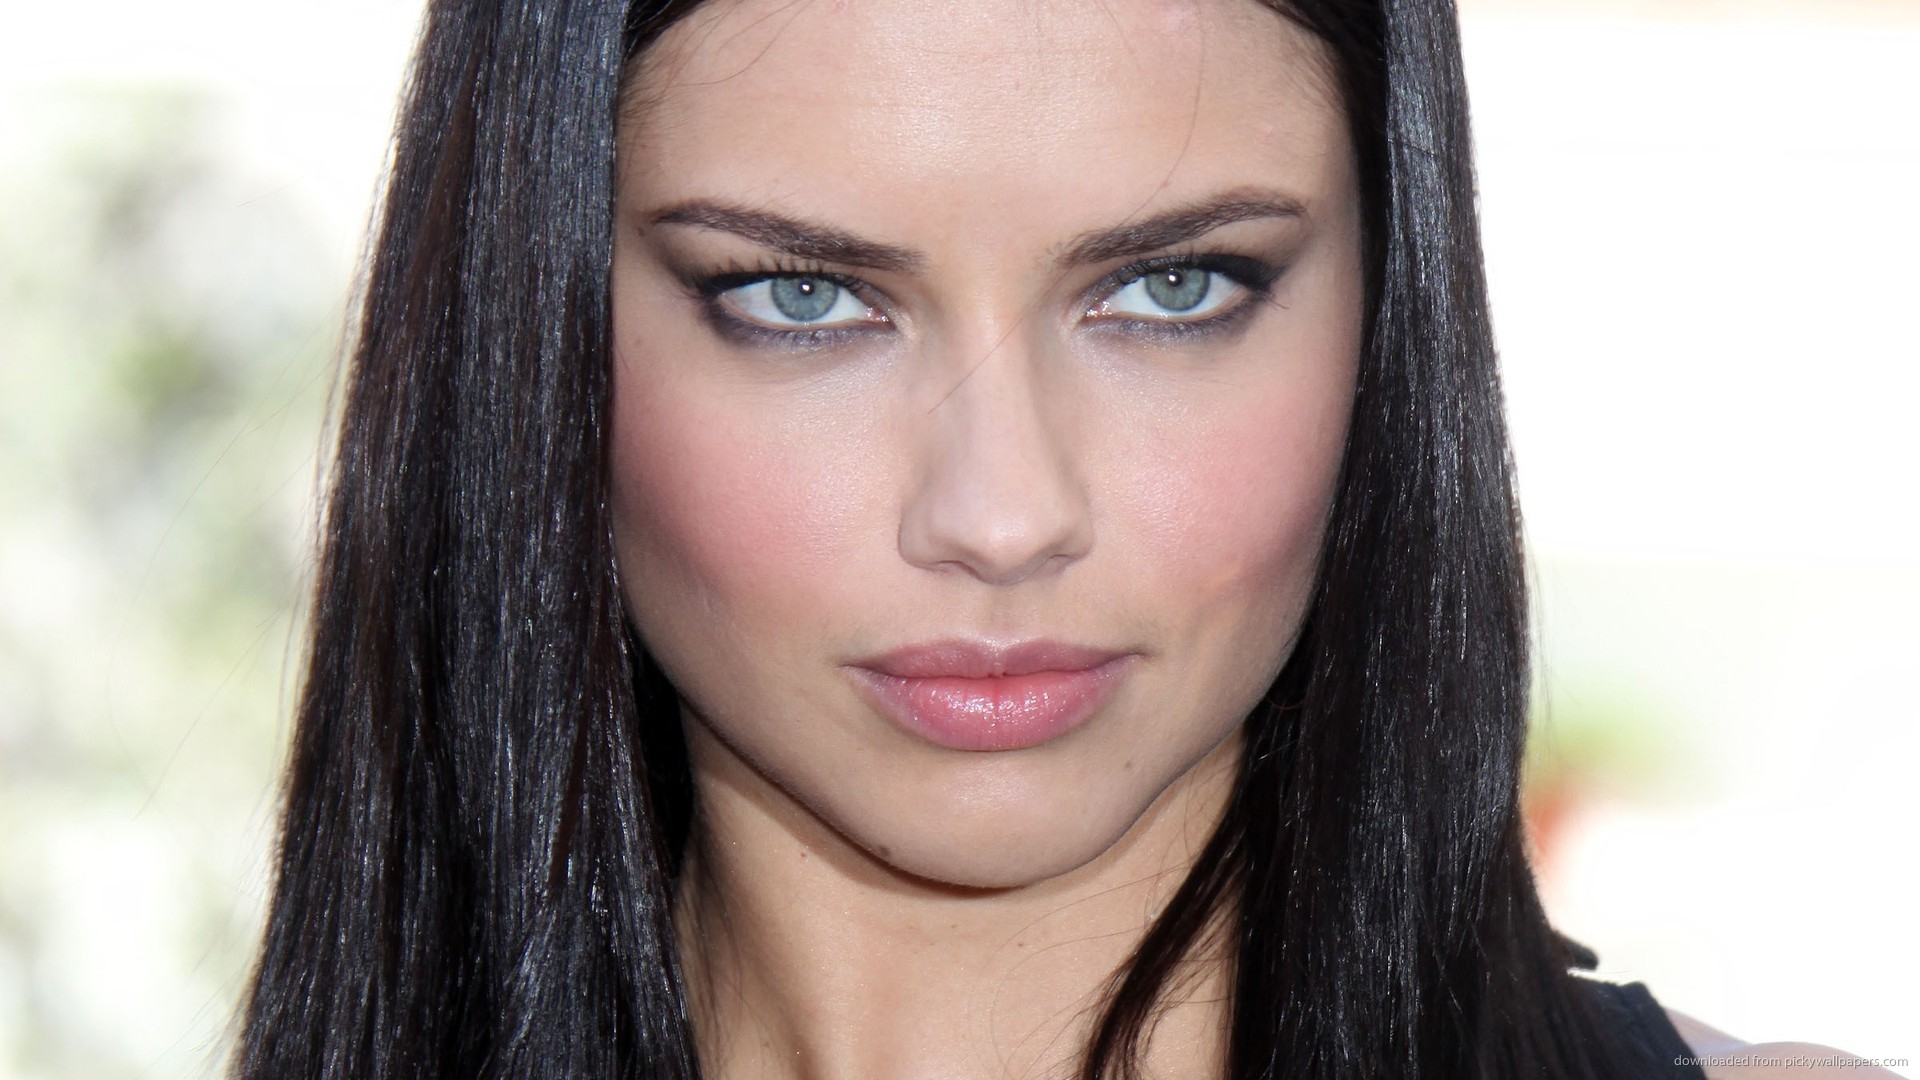 Adriana lima wallpaper hd wallpapermonkey adriana lima hd wallpaper adriana lima wallpaper hd wallpapermonkey adriana lima hd wallpaper cloudpix 1920x1080 voltagebd Gallery